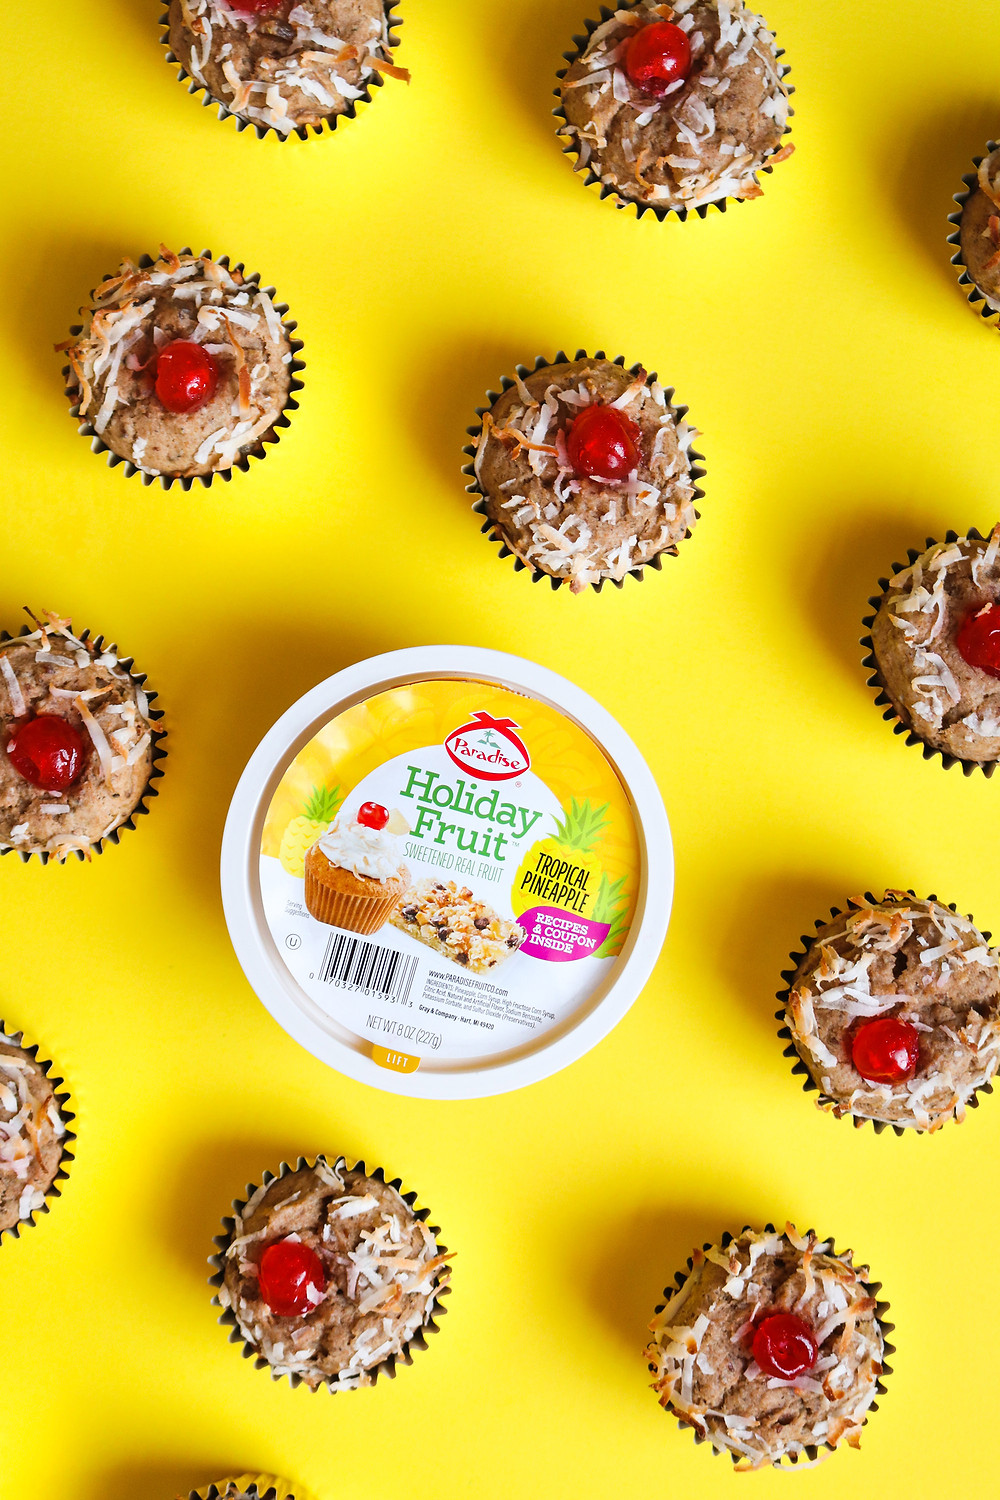 Vegan High Protein Tropical Banana Muffins garnished with Toasted Coconut and Paradise Candied Fruit Red Cherries